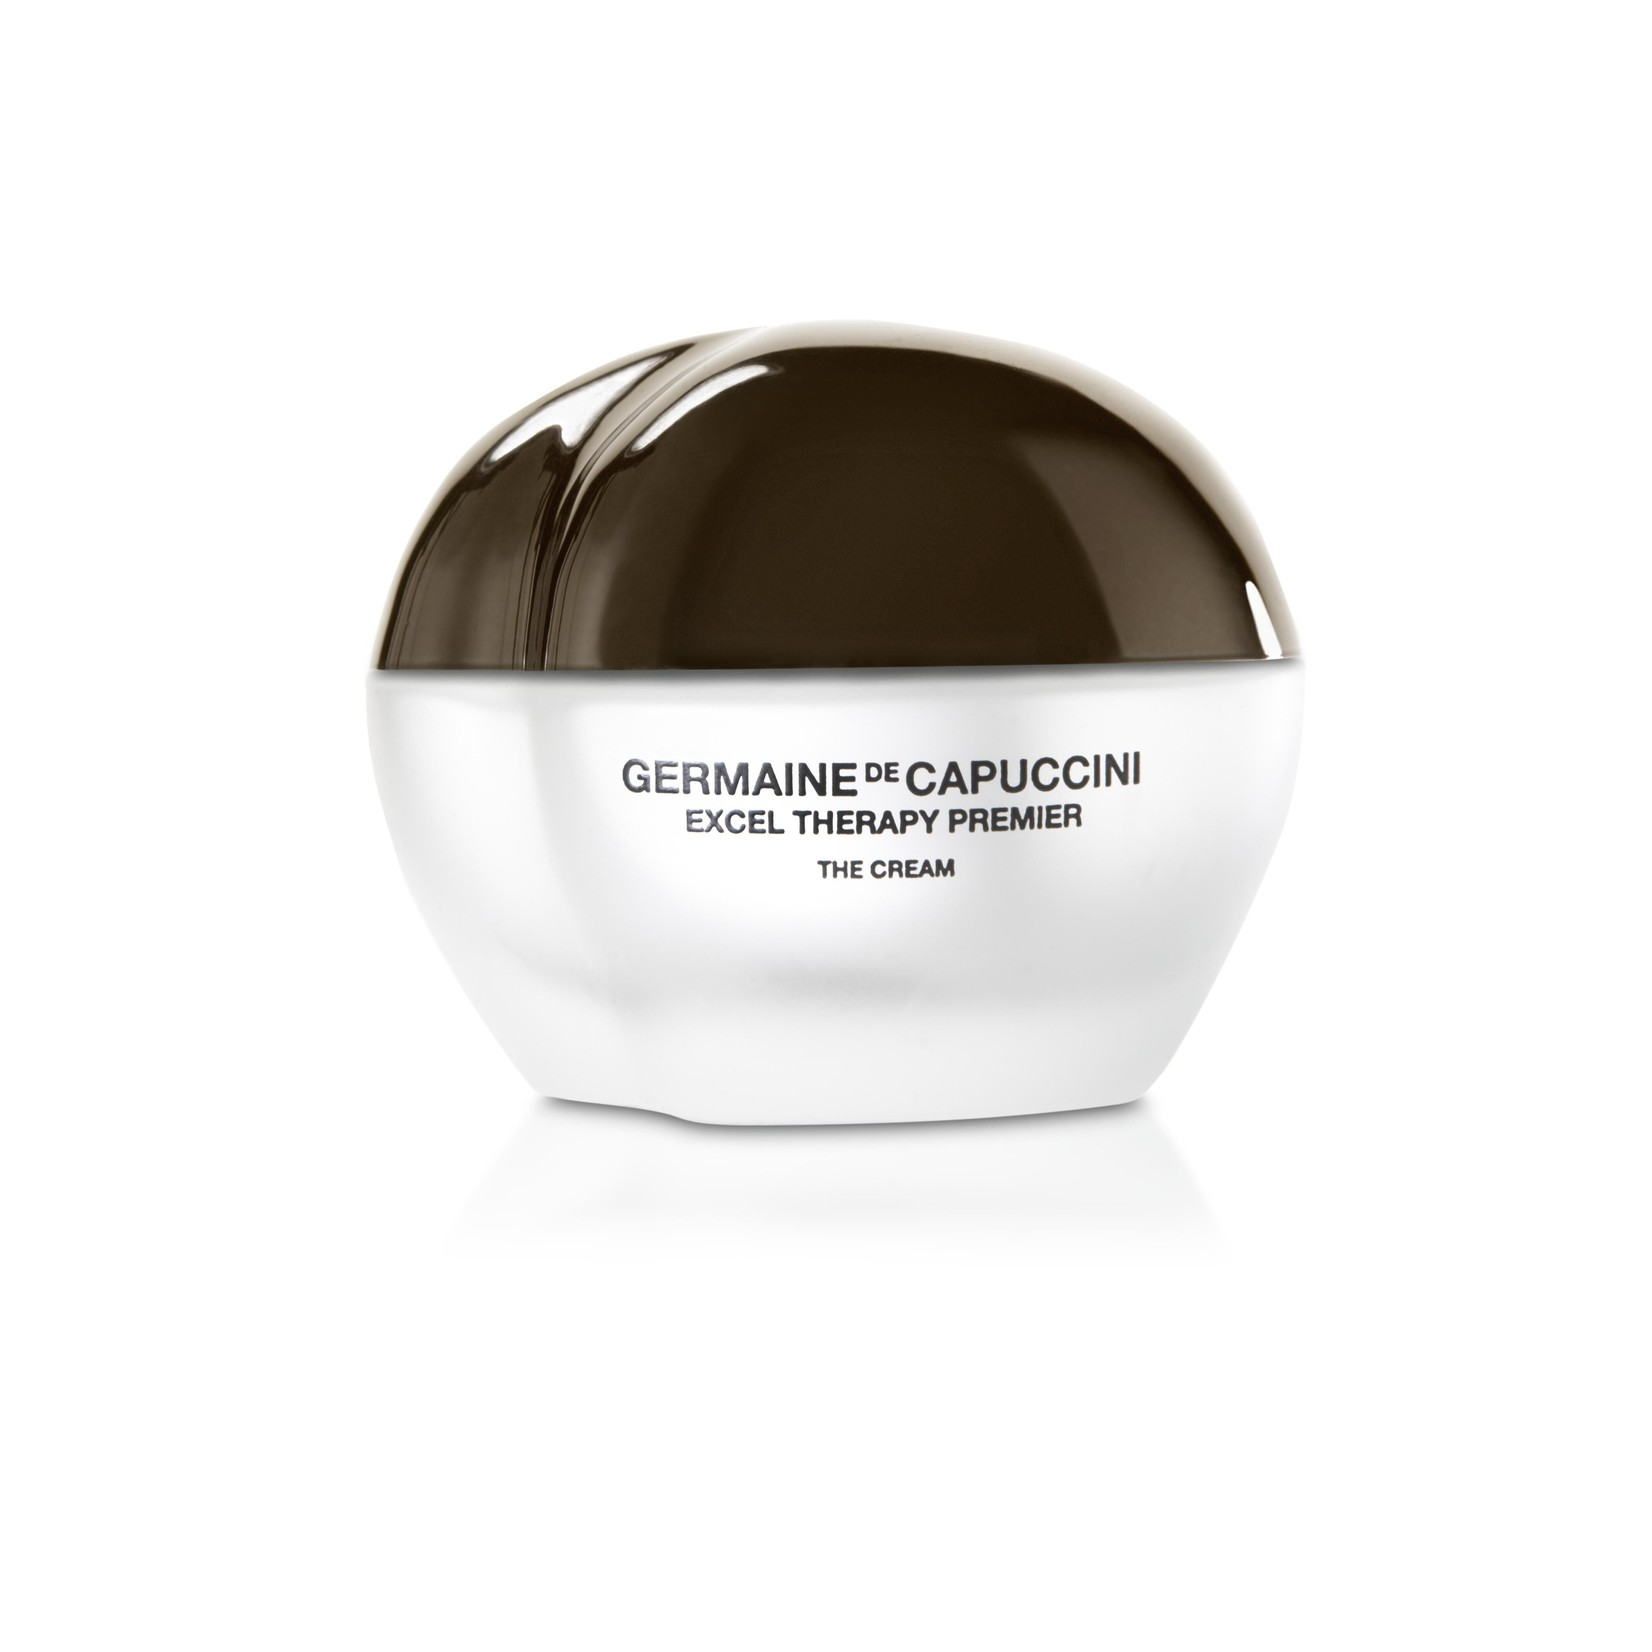 Germaine de Cappucini The Cream